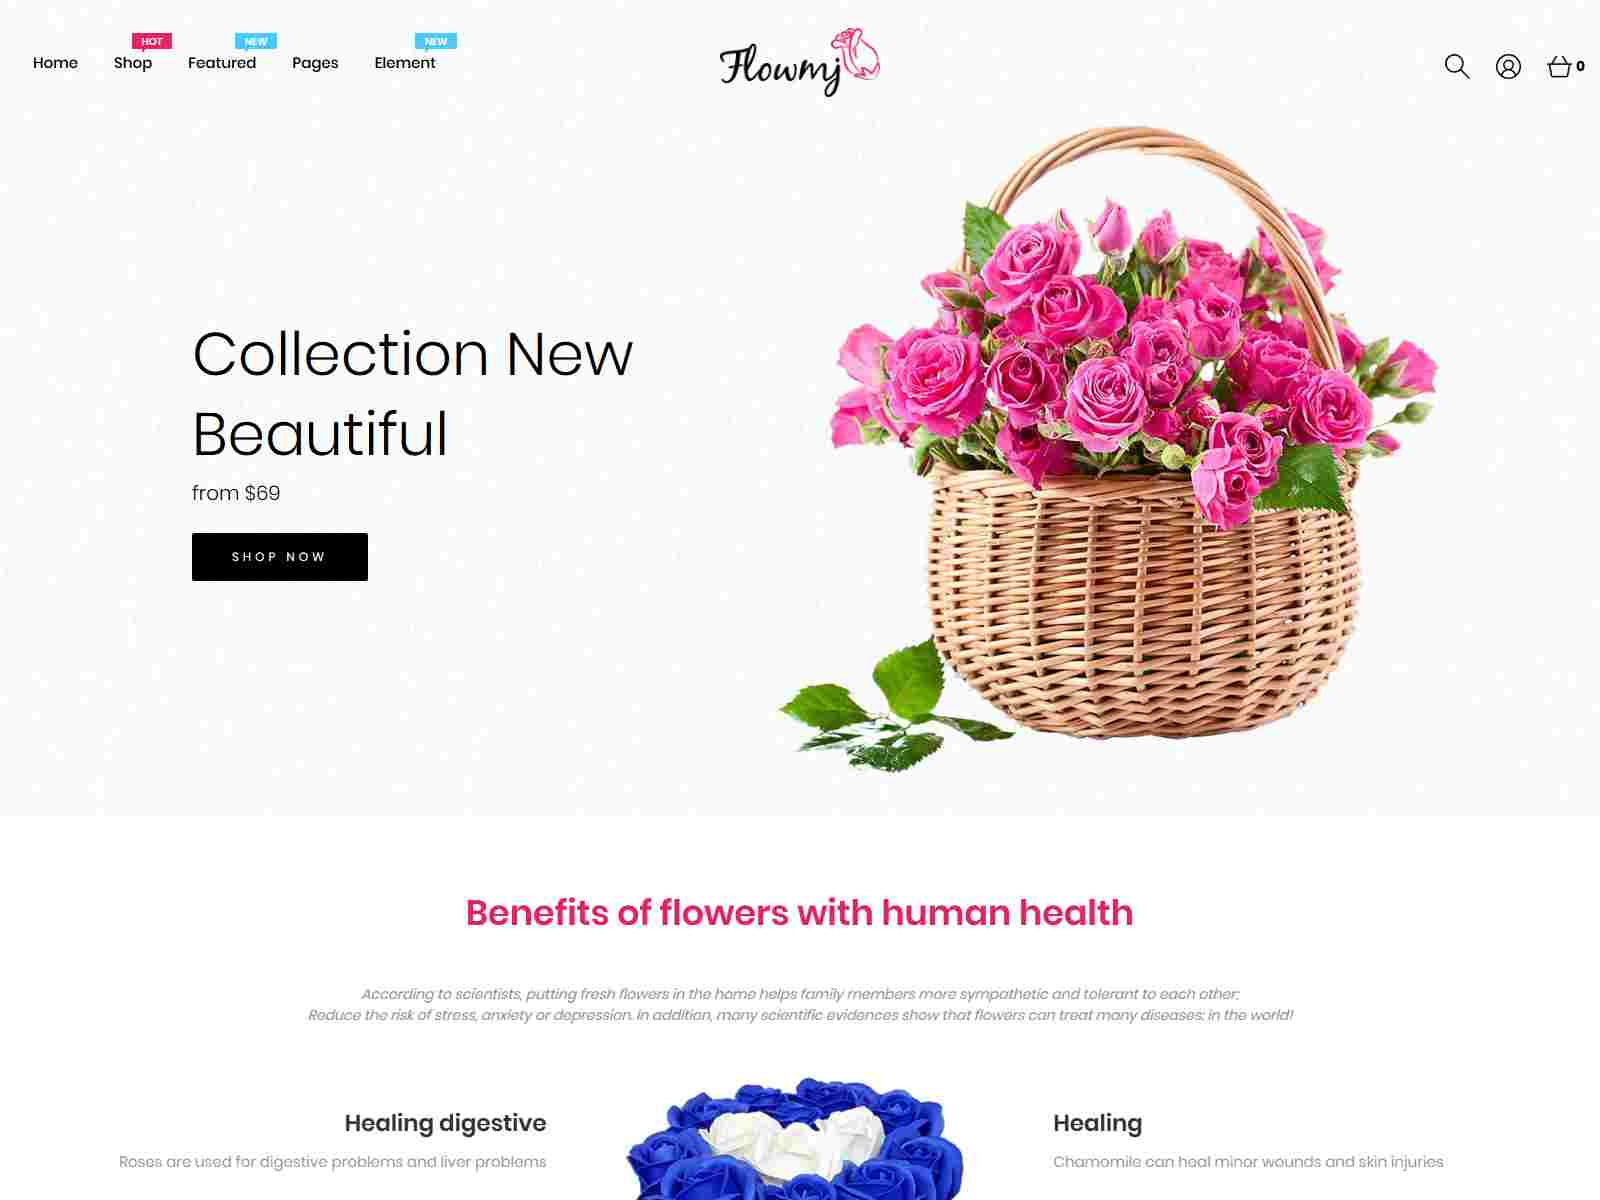 Flowmj - Florist Boutique and  Decoration Store Shopify Theme